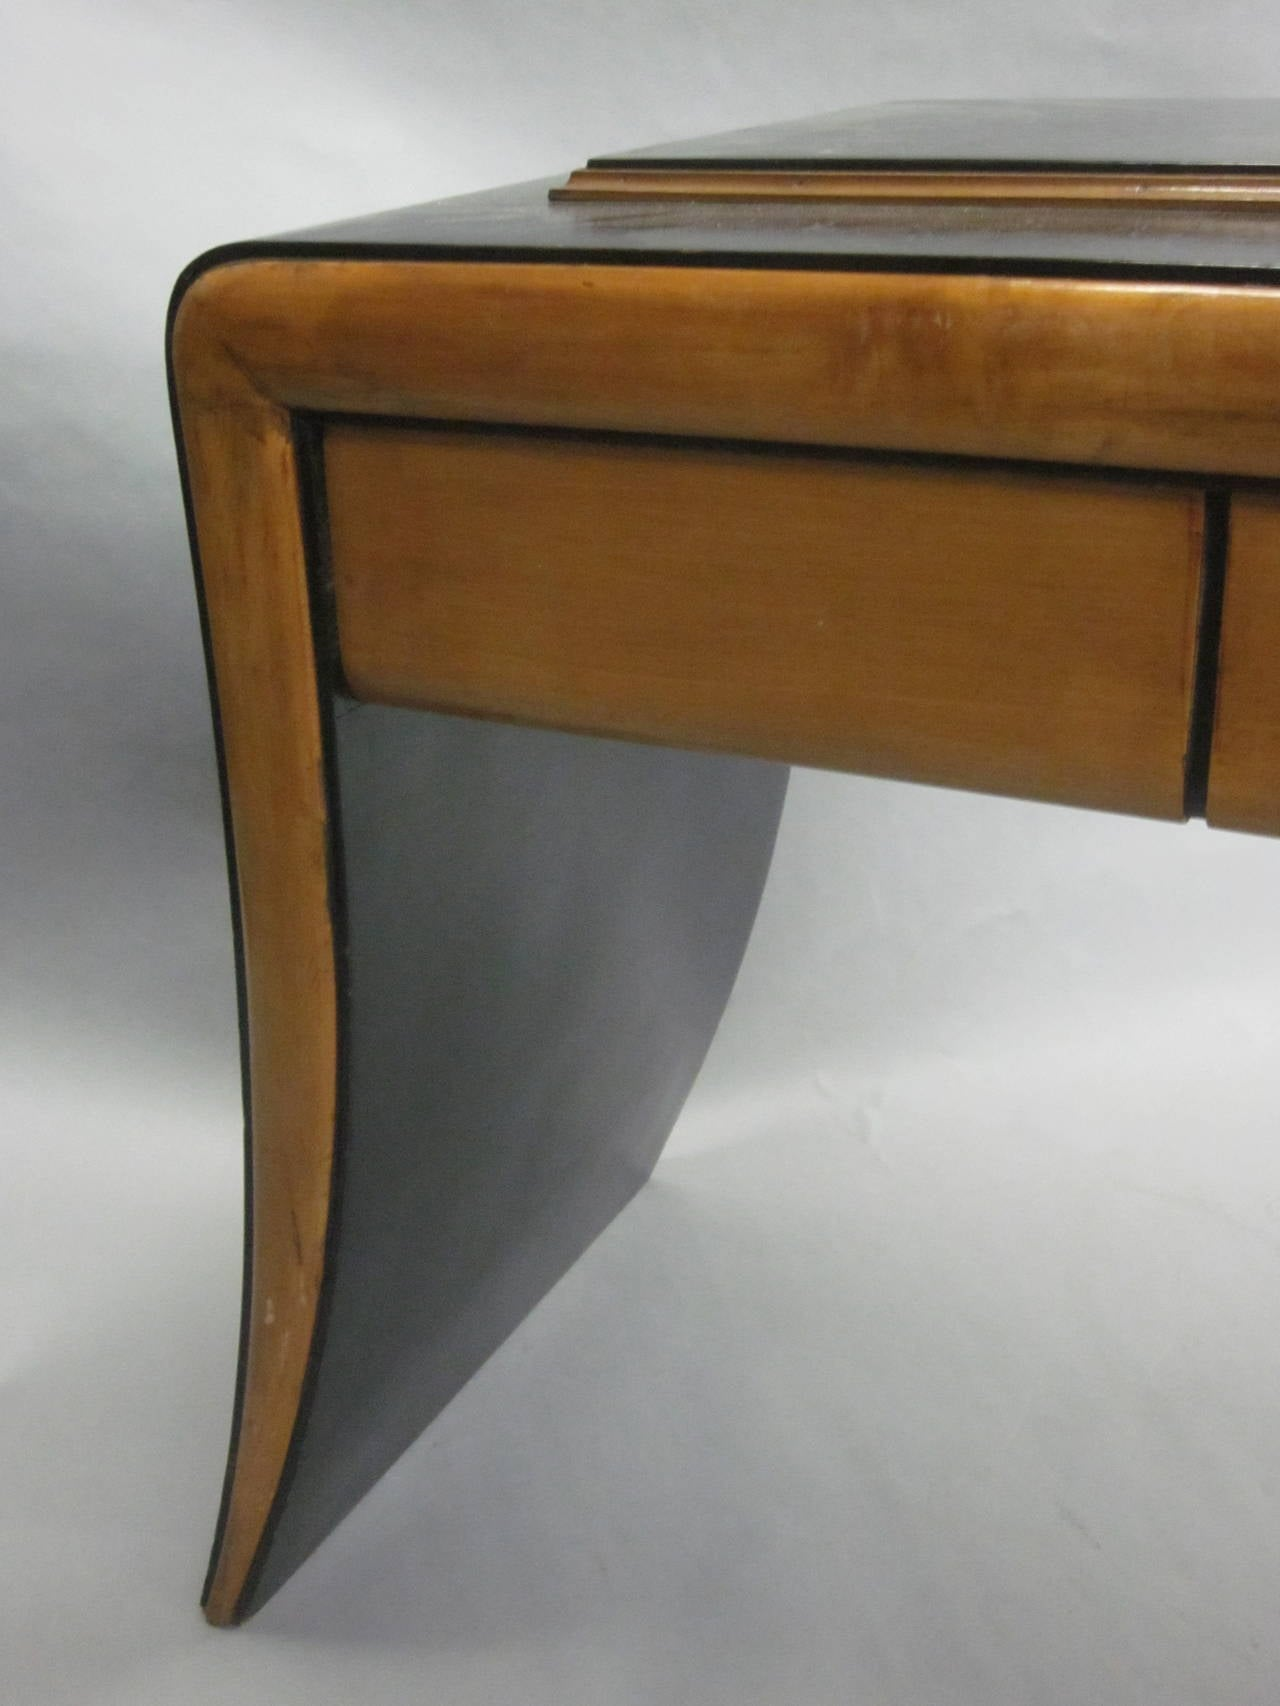 Italian Mid-Century Modern Neoclassical Vanity / Sofa Table by Paolo Buffa, 1930 8